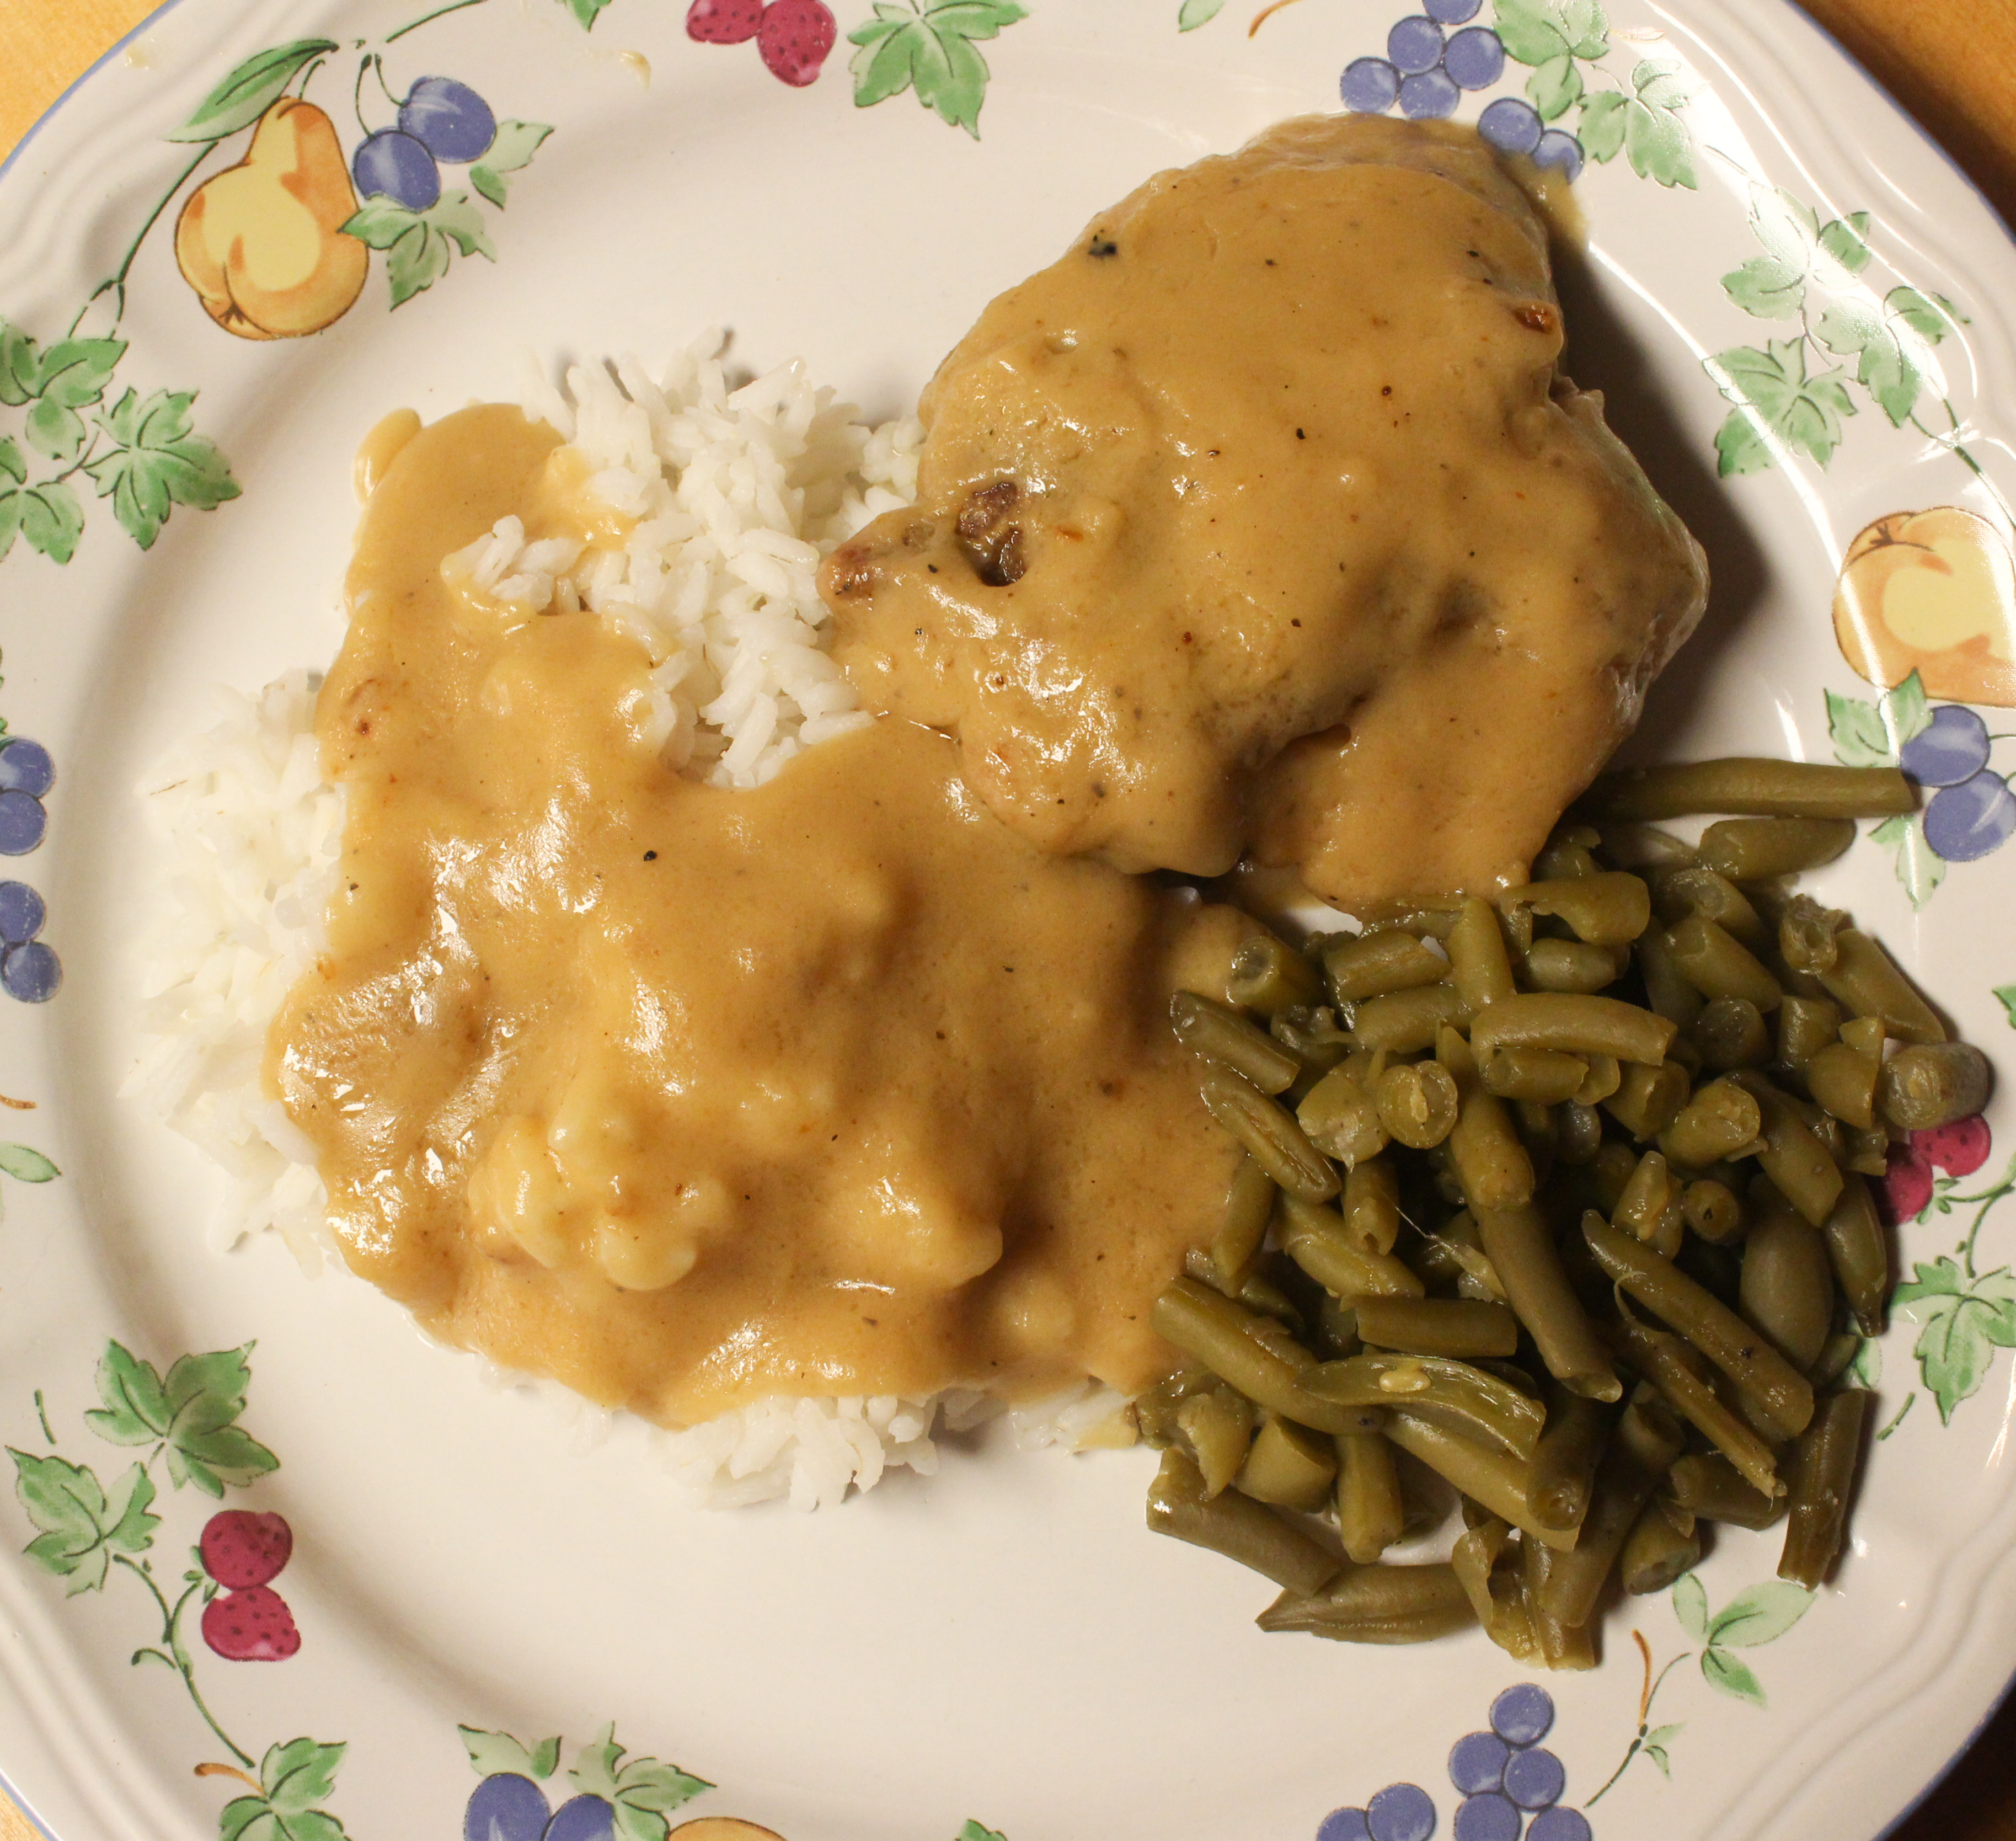 chick n gravy The cracker barrel saturday dinner special is made from scratch chicken n' rice chicken tenderloins are simmered in a hearty chicken mushroom gravy and served on top of brown rice pilaf along with two country vegetables.